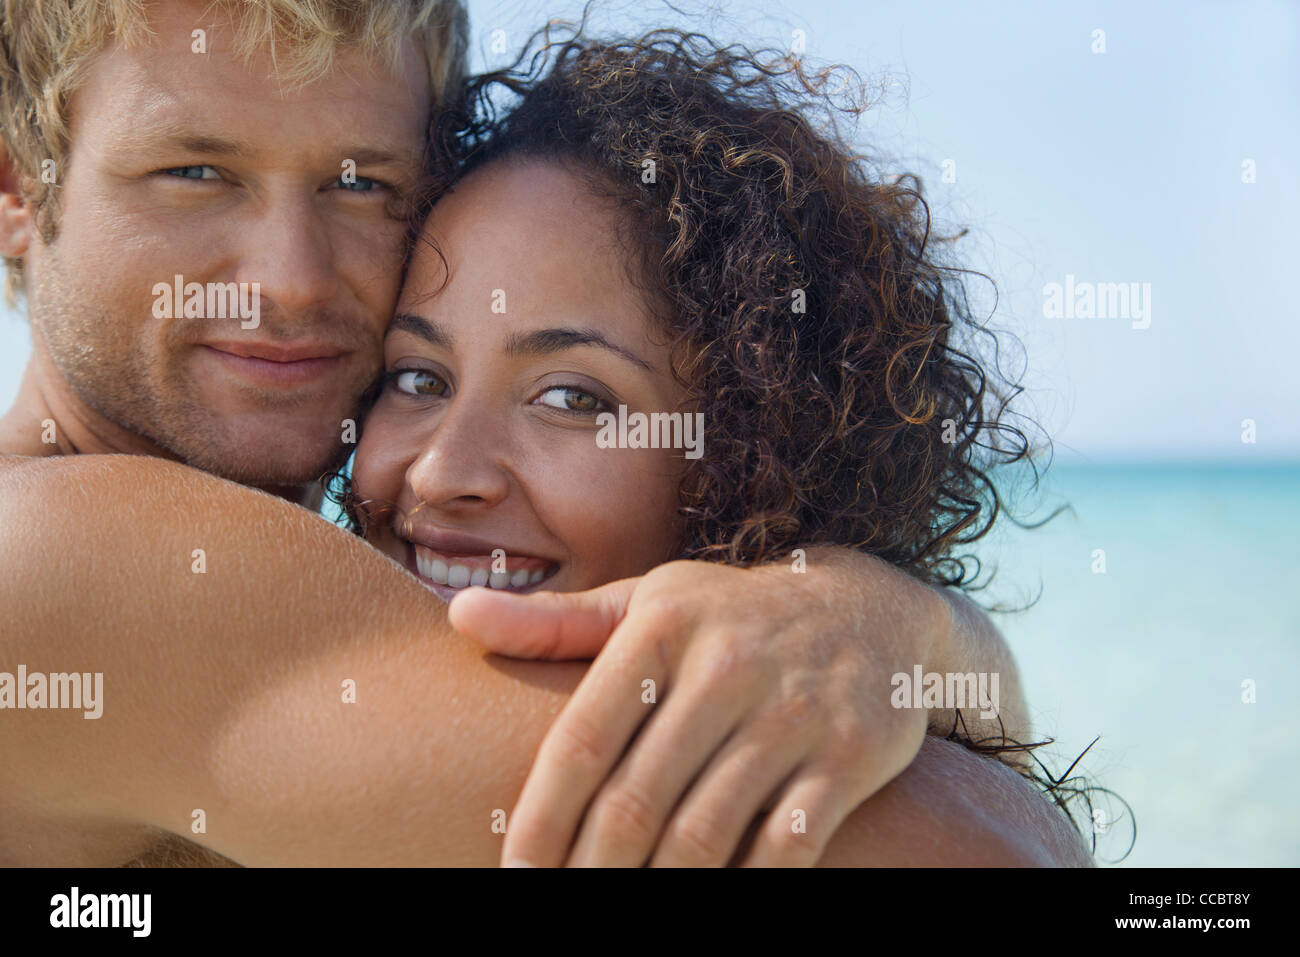 Couple embracing at the beach, portrait Stock Photo